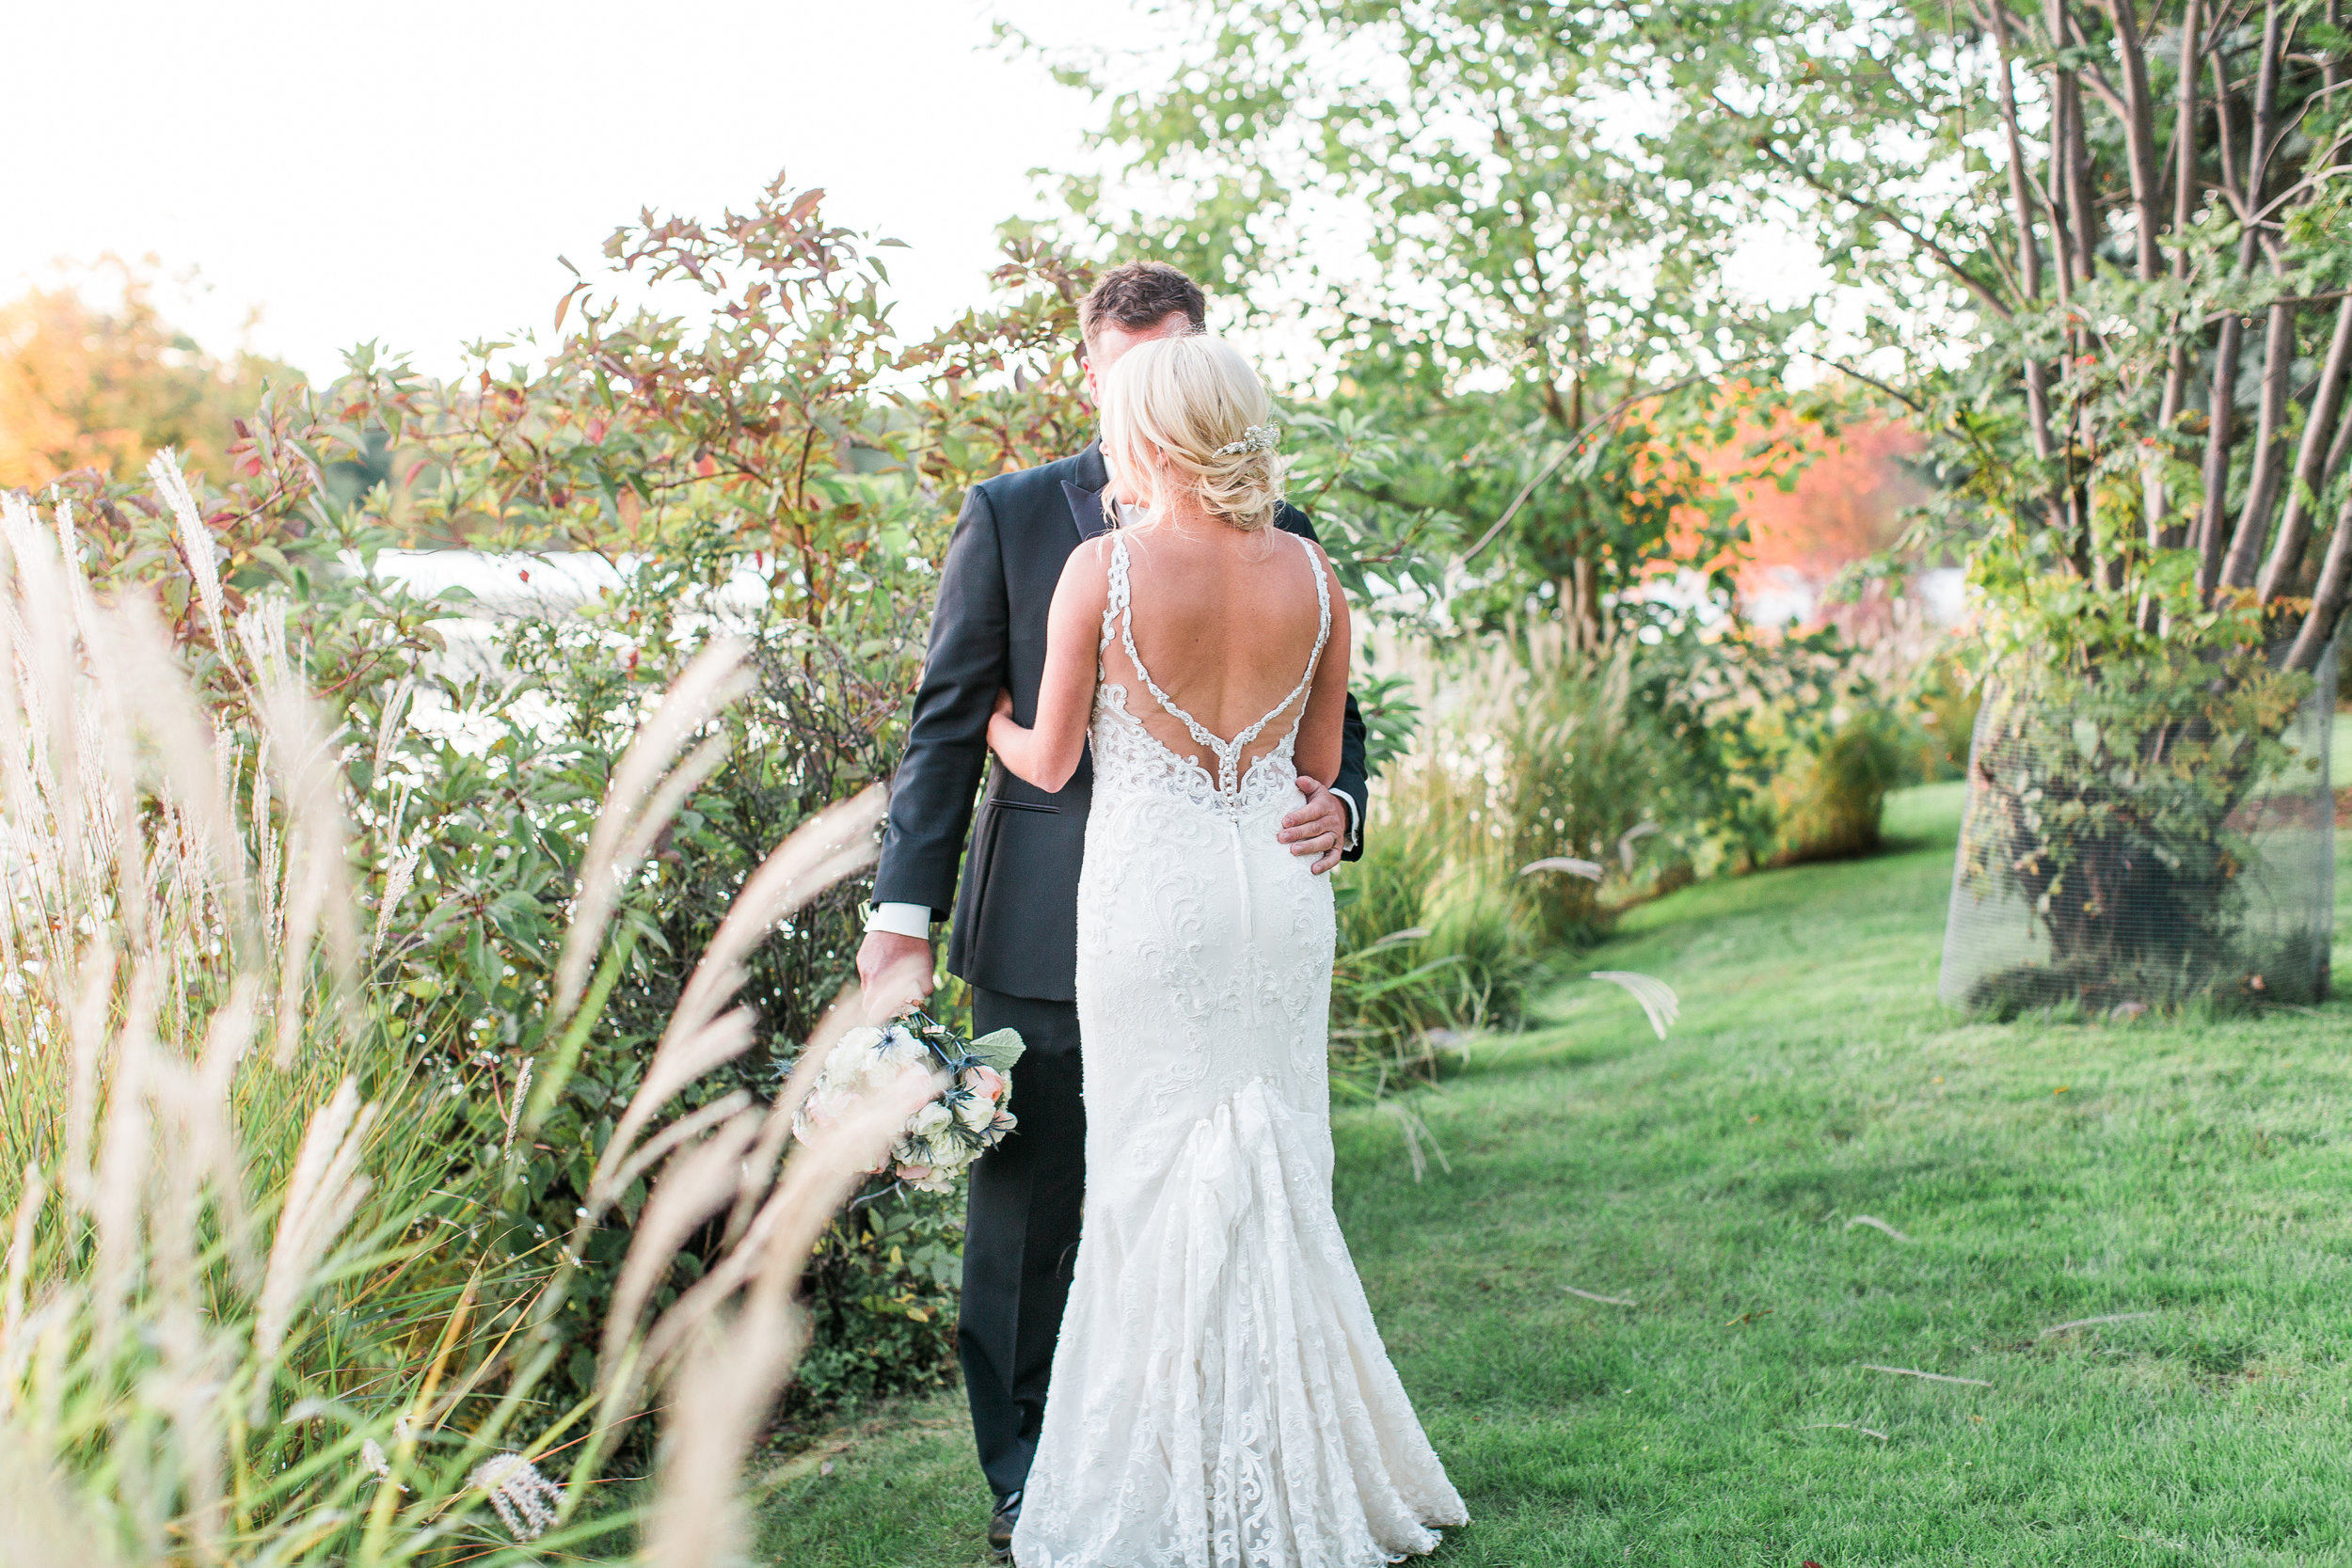 Charthouse Lakeville Minnesota wedding bride and groom at sunset back of dress detail Minnesota wedding photography Mallory Kiesow Photography